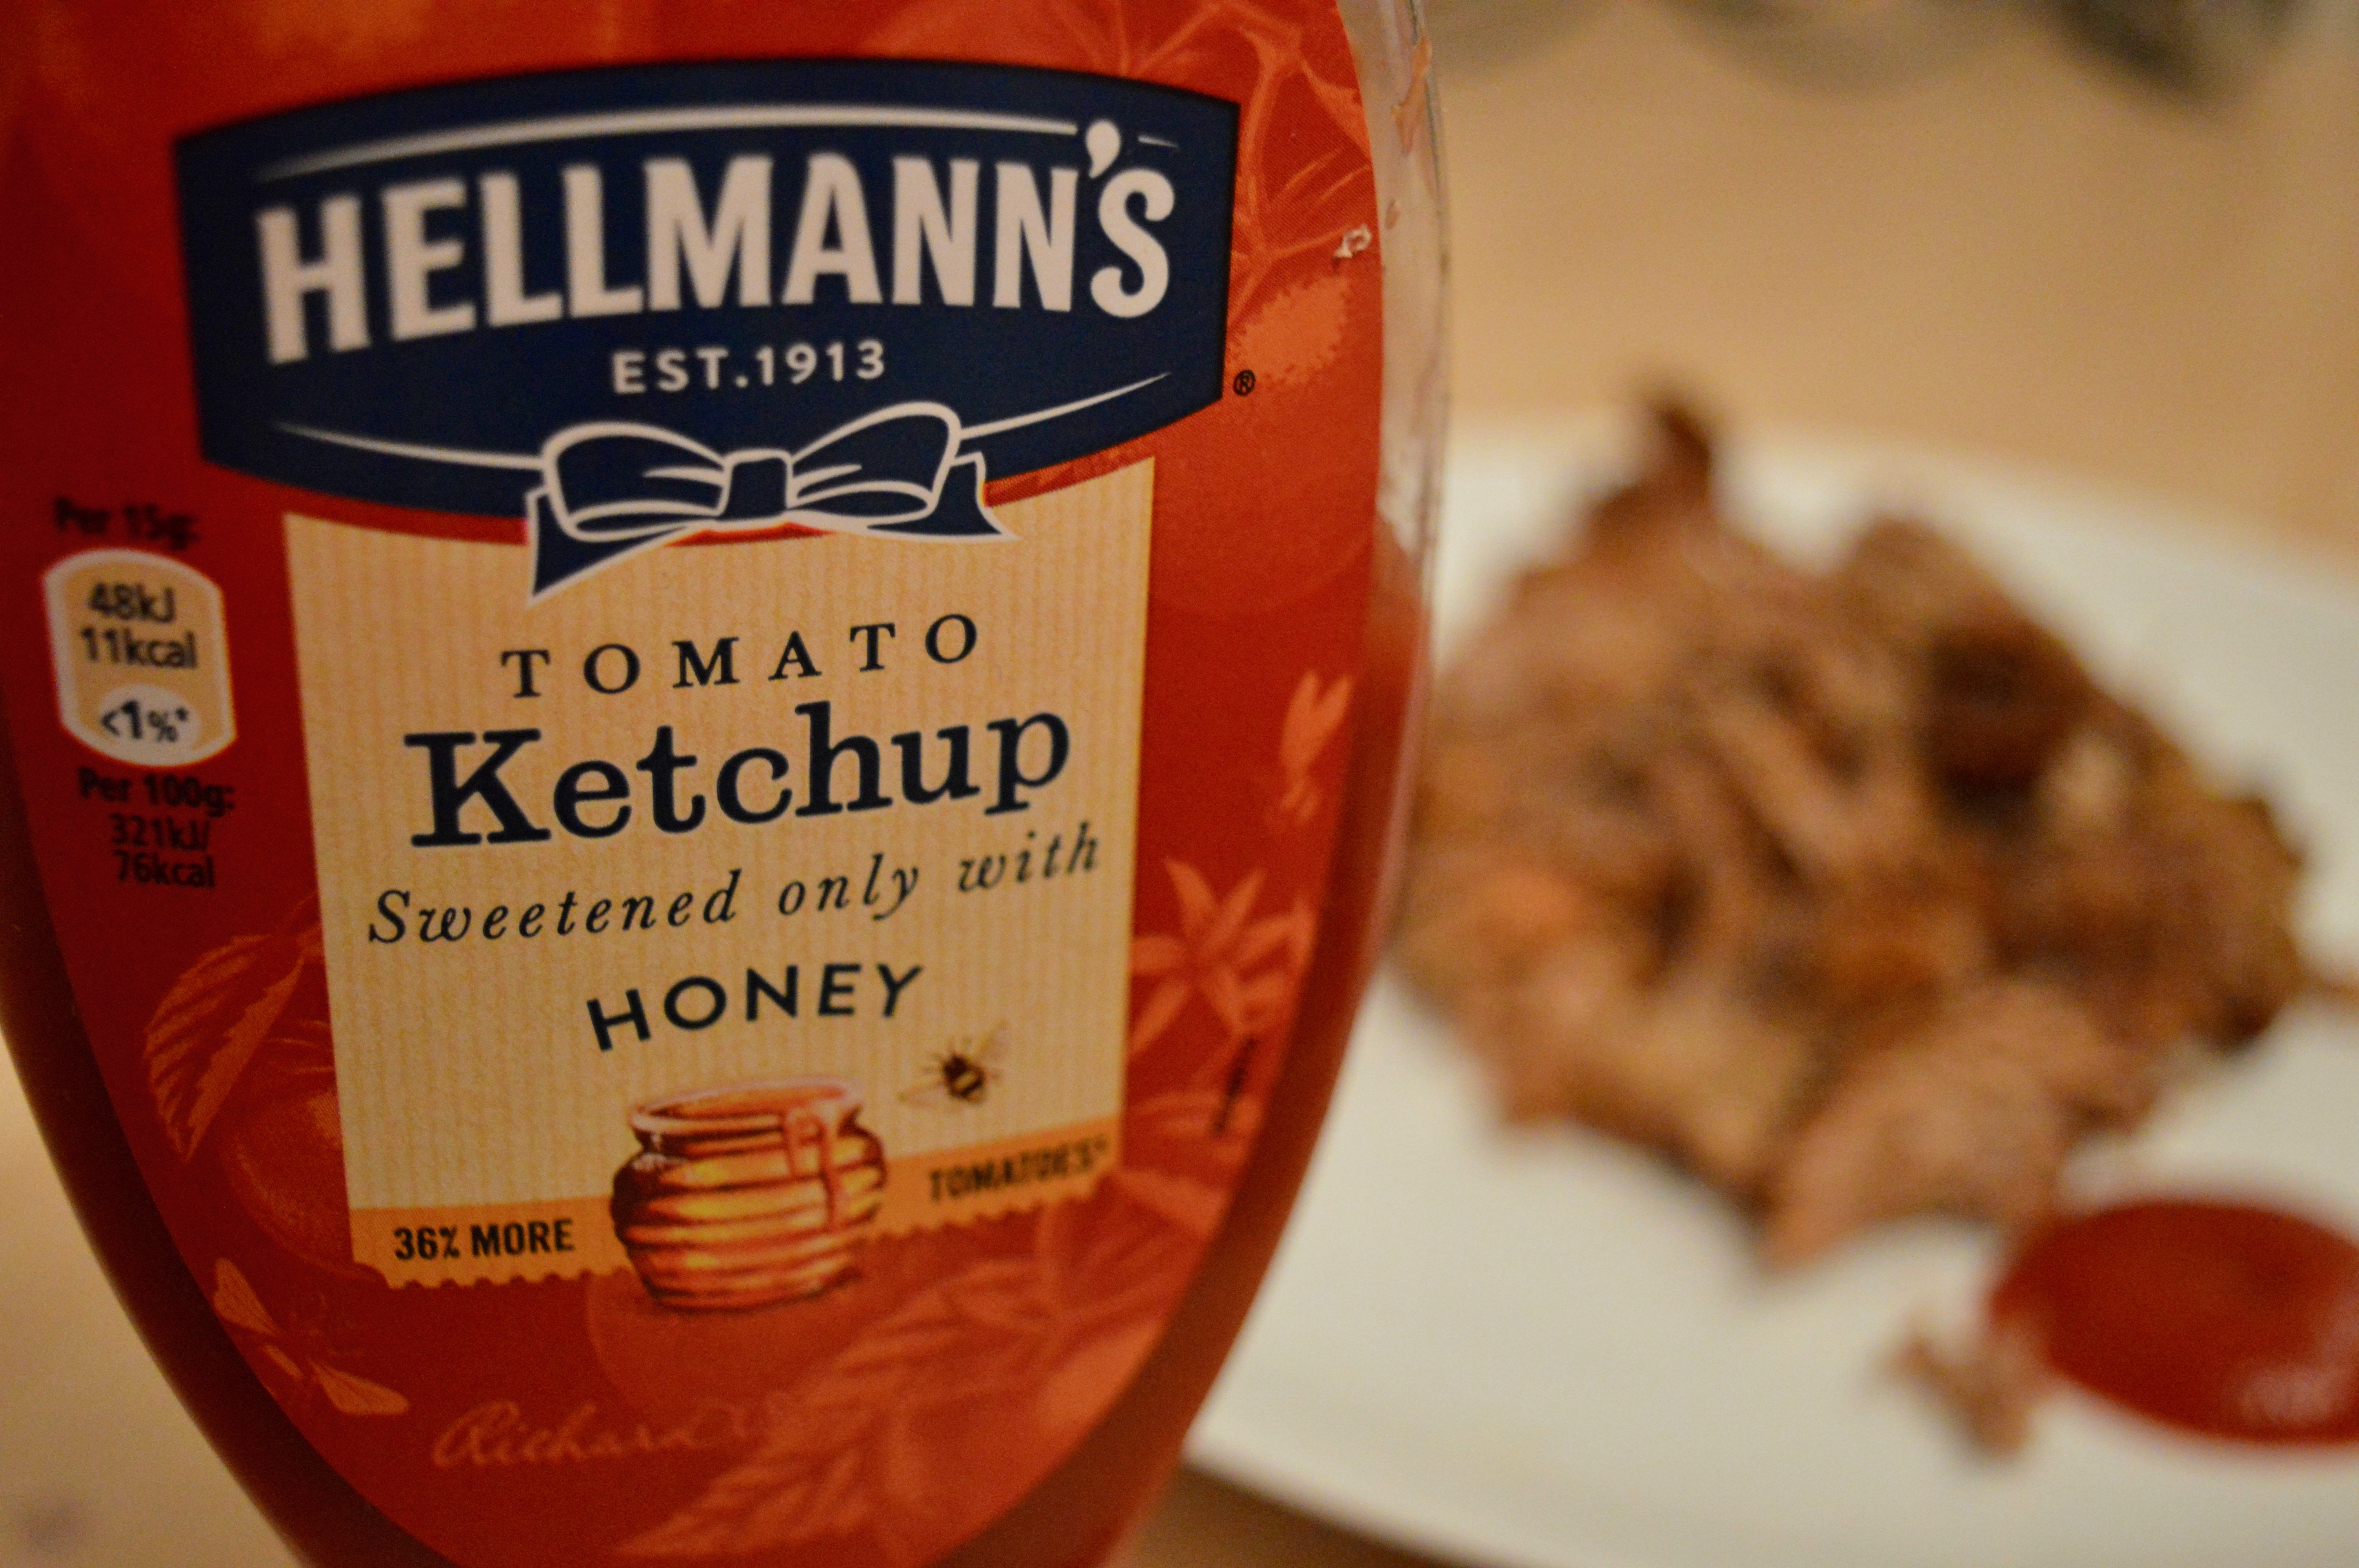 recipe-hellmann's-tomato-ketchup-with-honey-pulled-pork-recipe-elle-blonde-luxury-lifestyle-blog